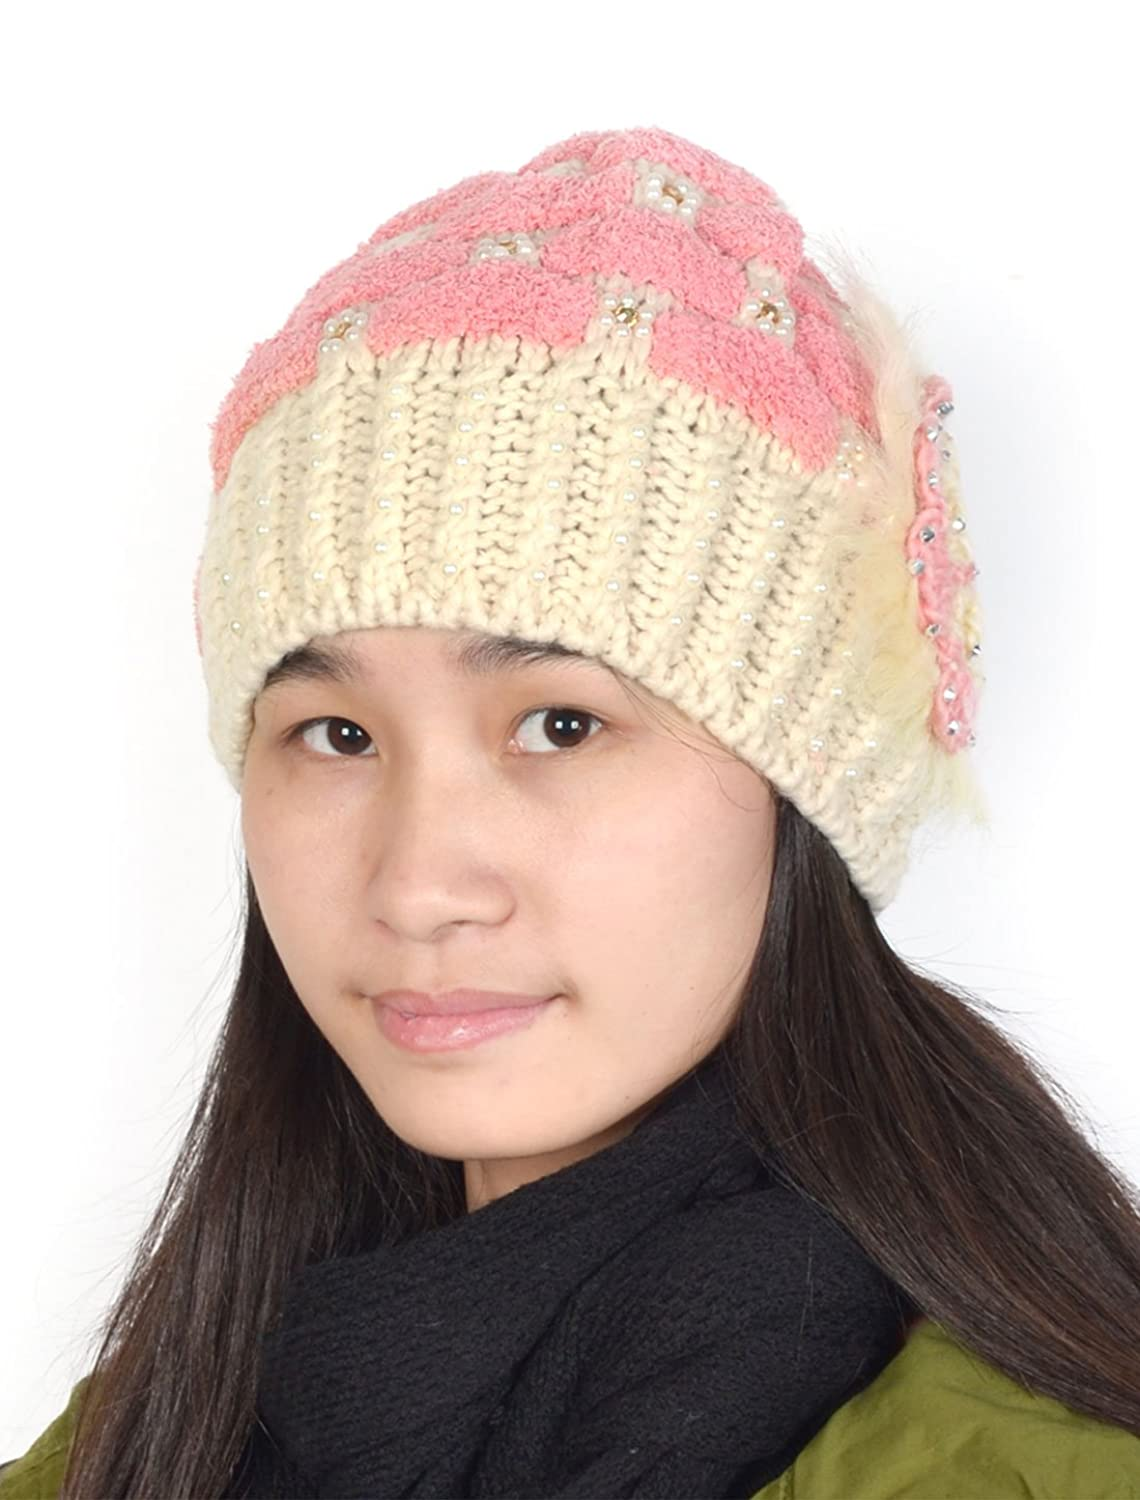 Pom-pom Style Pearl Decor Crochet Flower Accent Knitted Beanie Hat